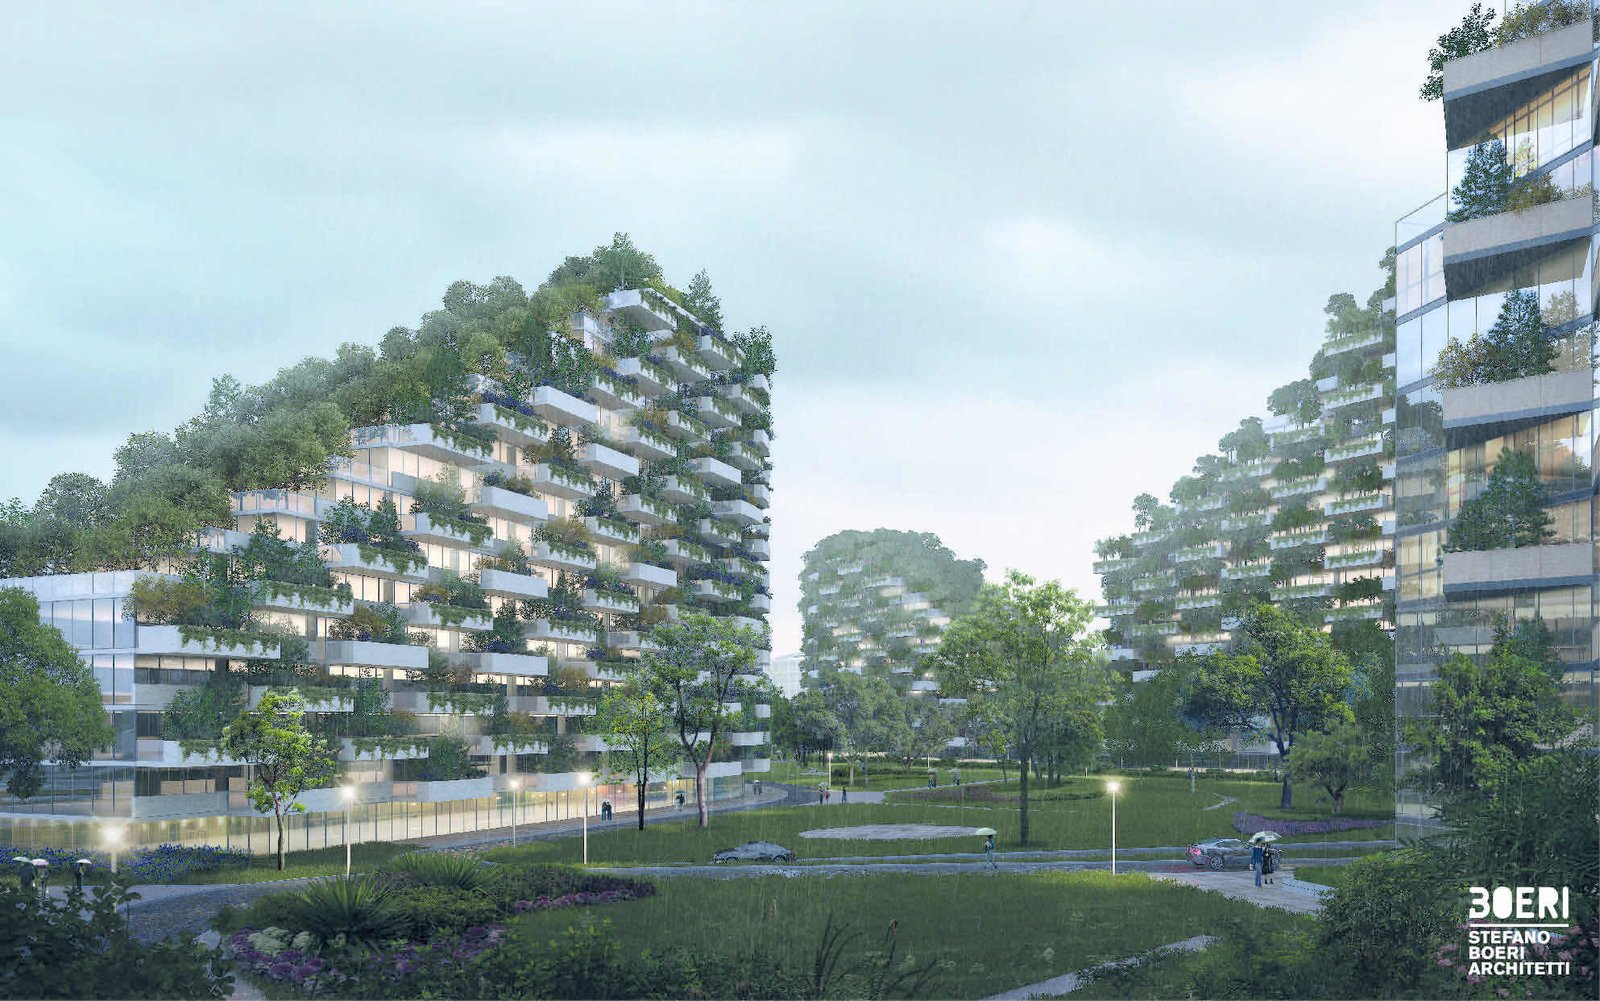 Photo 1 of 6 in A Green City in China That Will Play a Major Role in Fighting Air Pollution